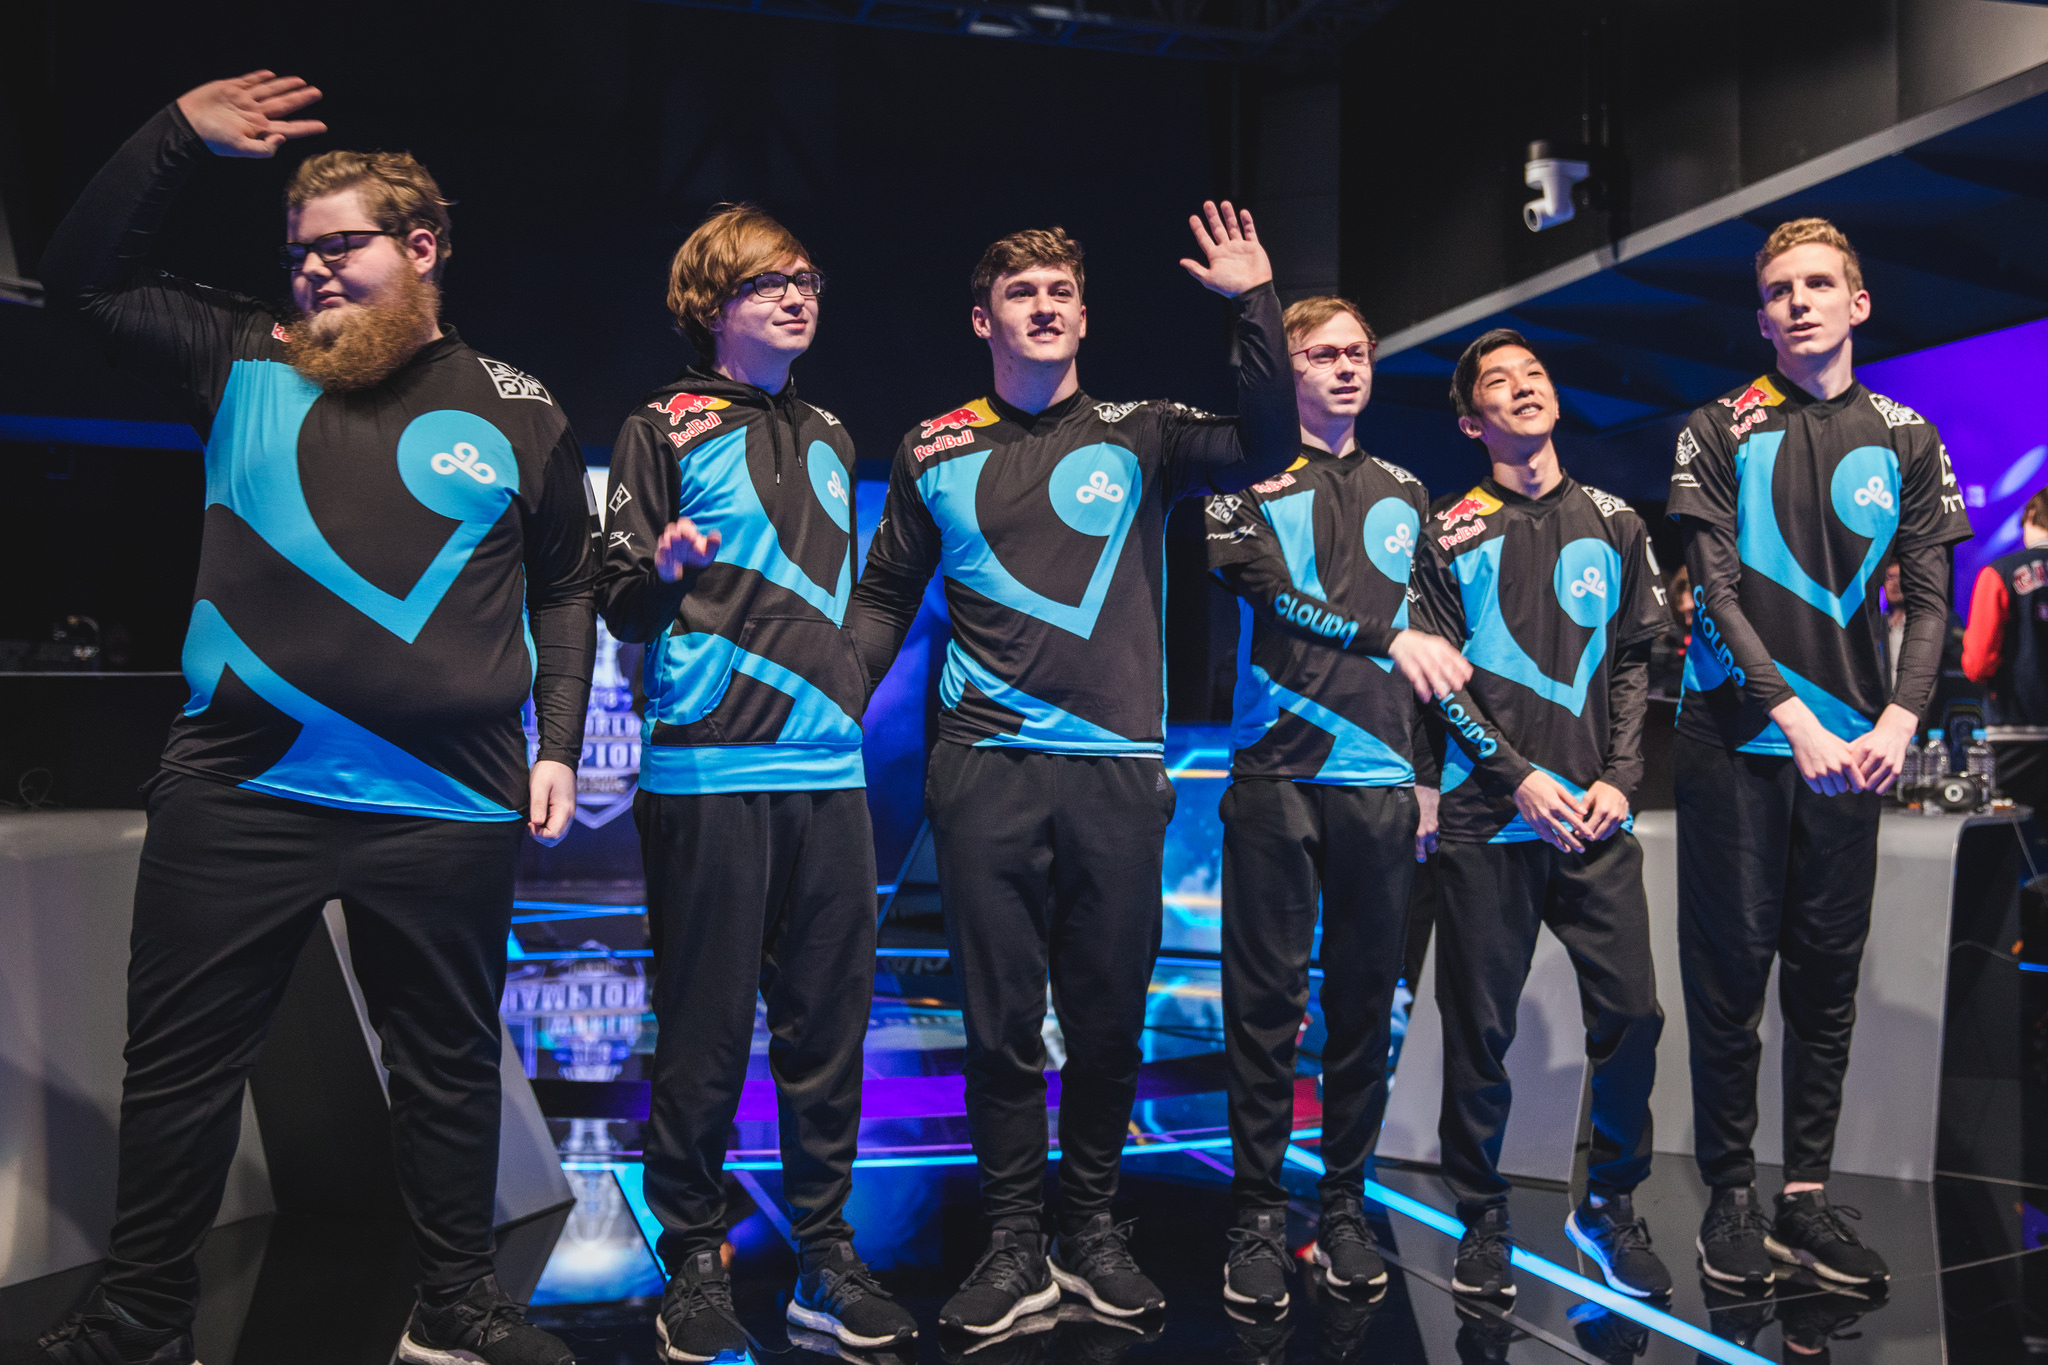 Cloud9 were lucky to advance past the play-in stage at Worlds - Dot Esports